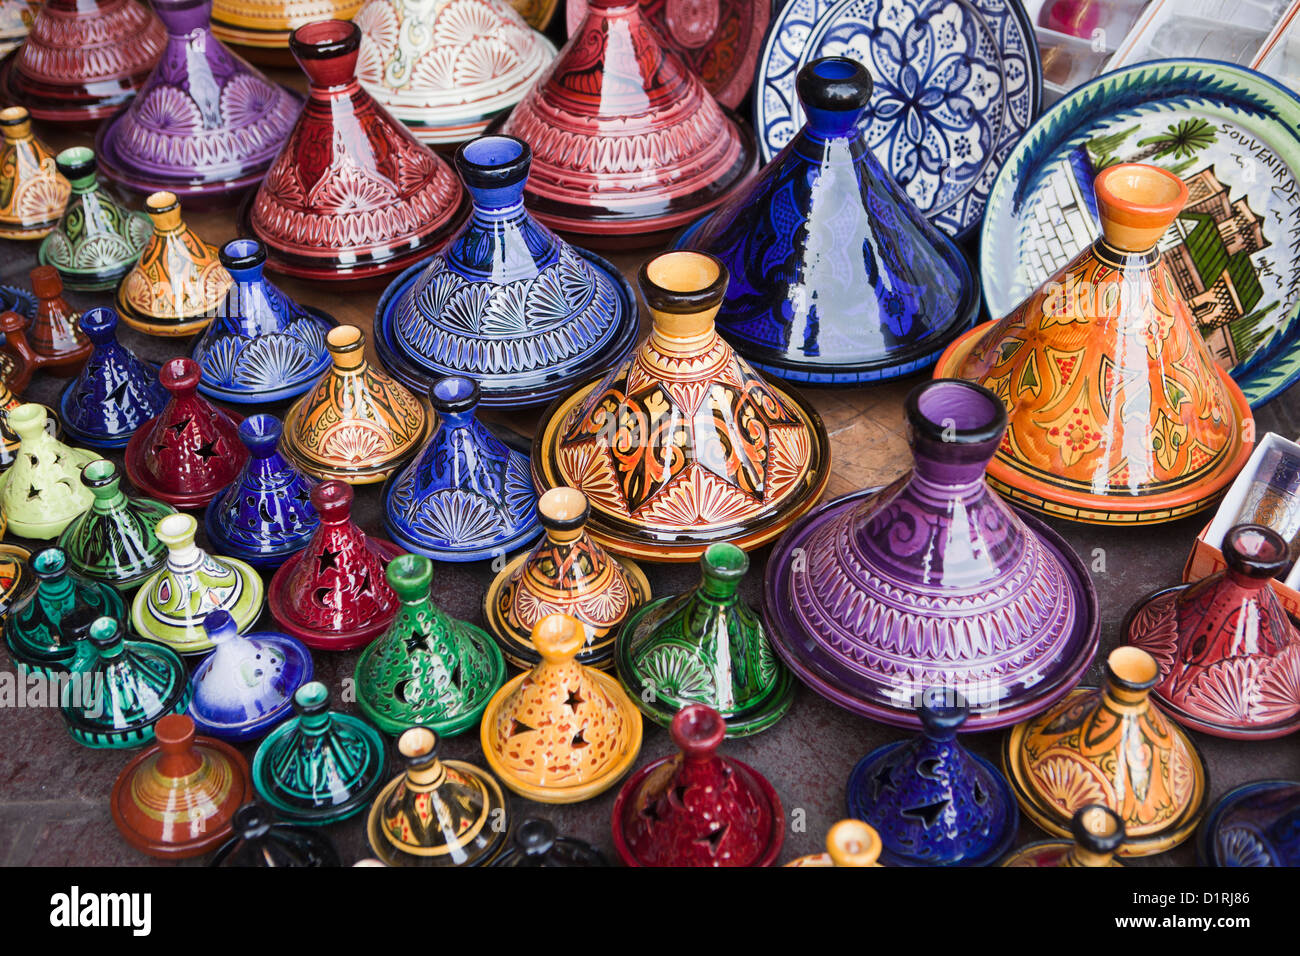 Morocco, Marrakech, Market. Tajine pottery for sale. - Stock Image